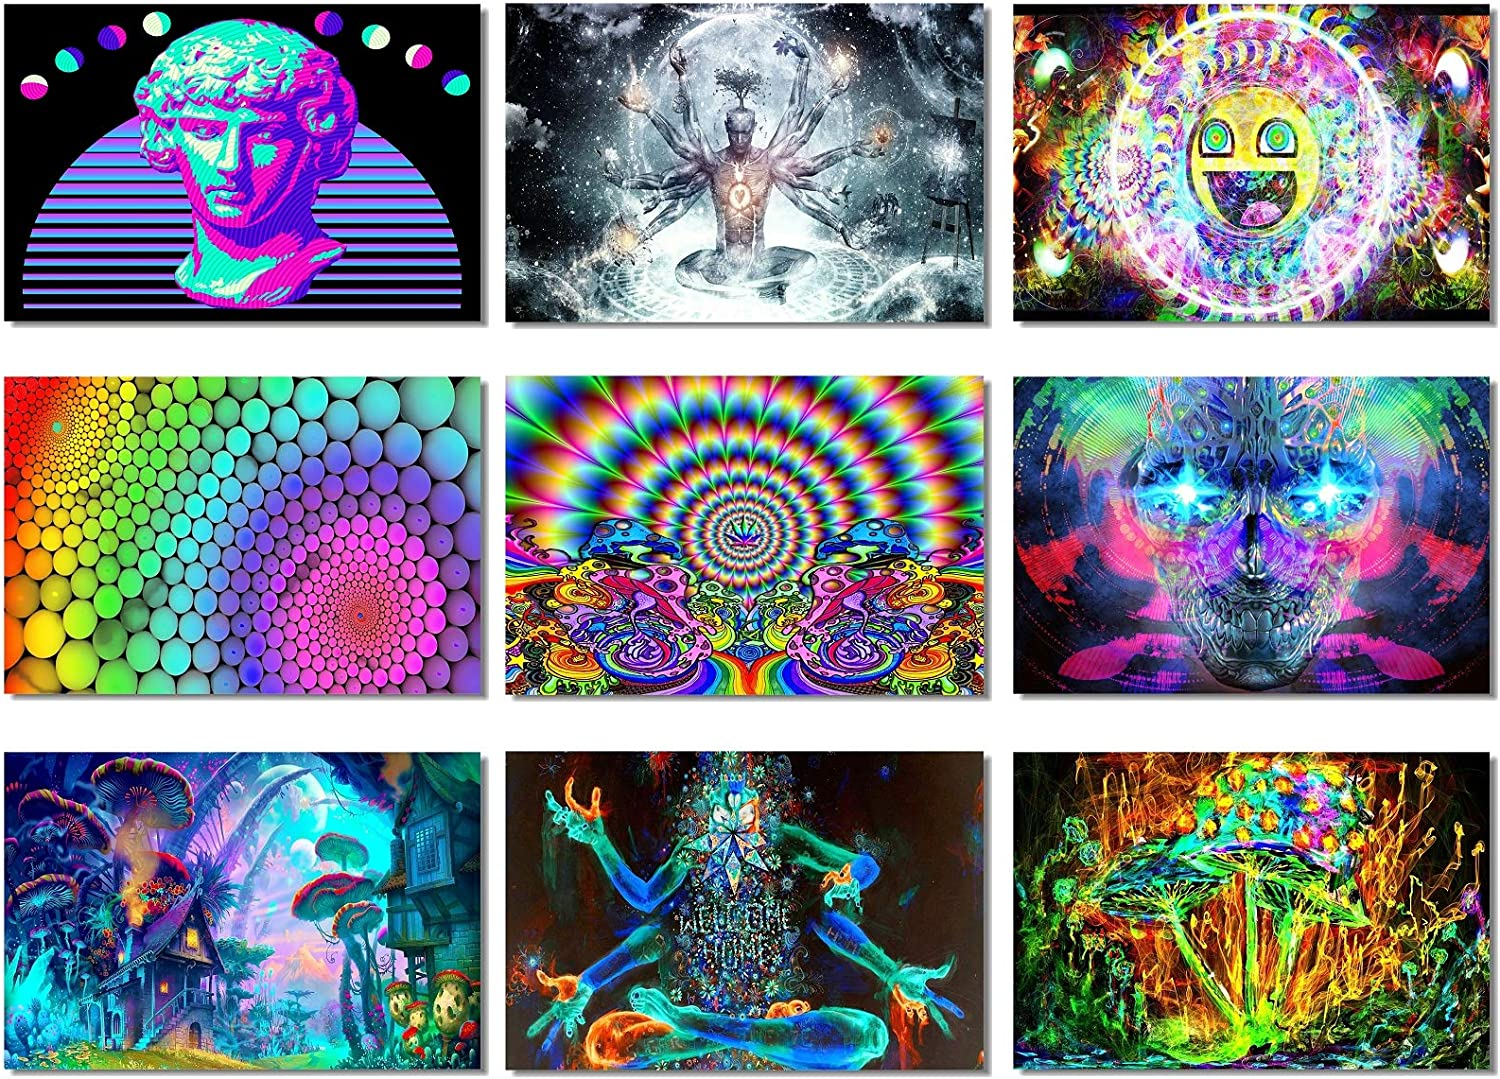 Poster Psychedelic Trippy Colorful Ttrippy Surreal Abstract Astral Art Print 38